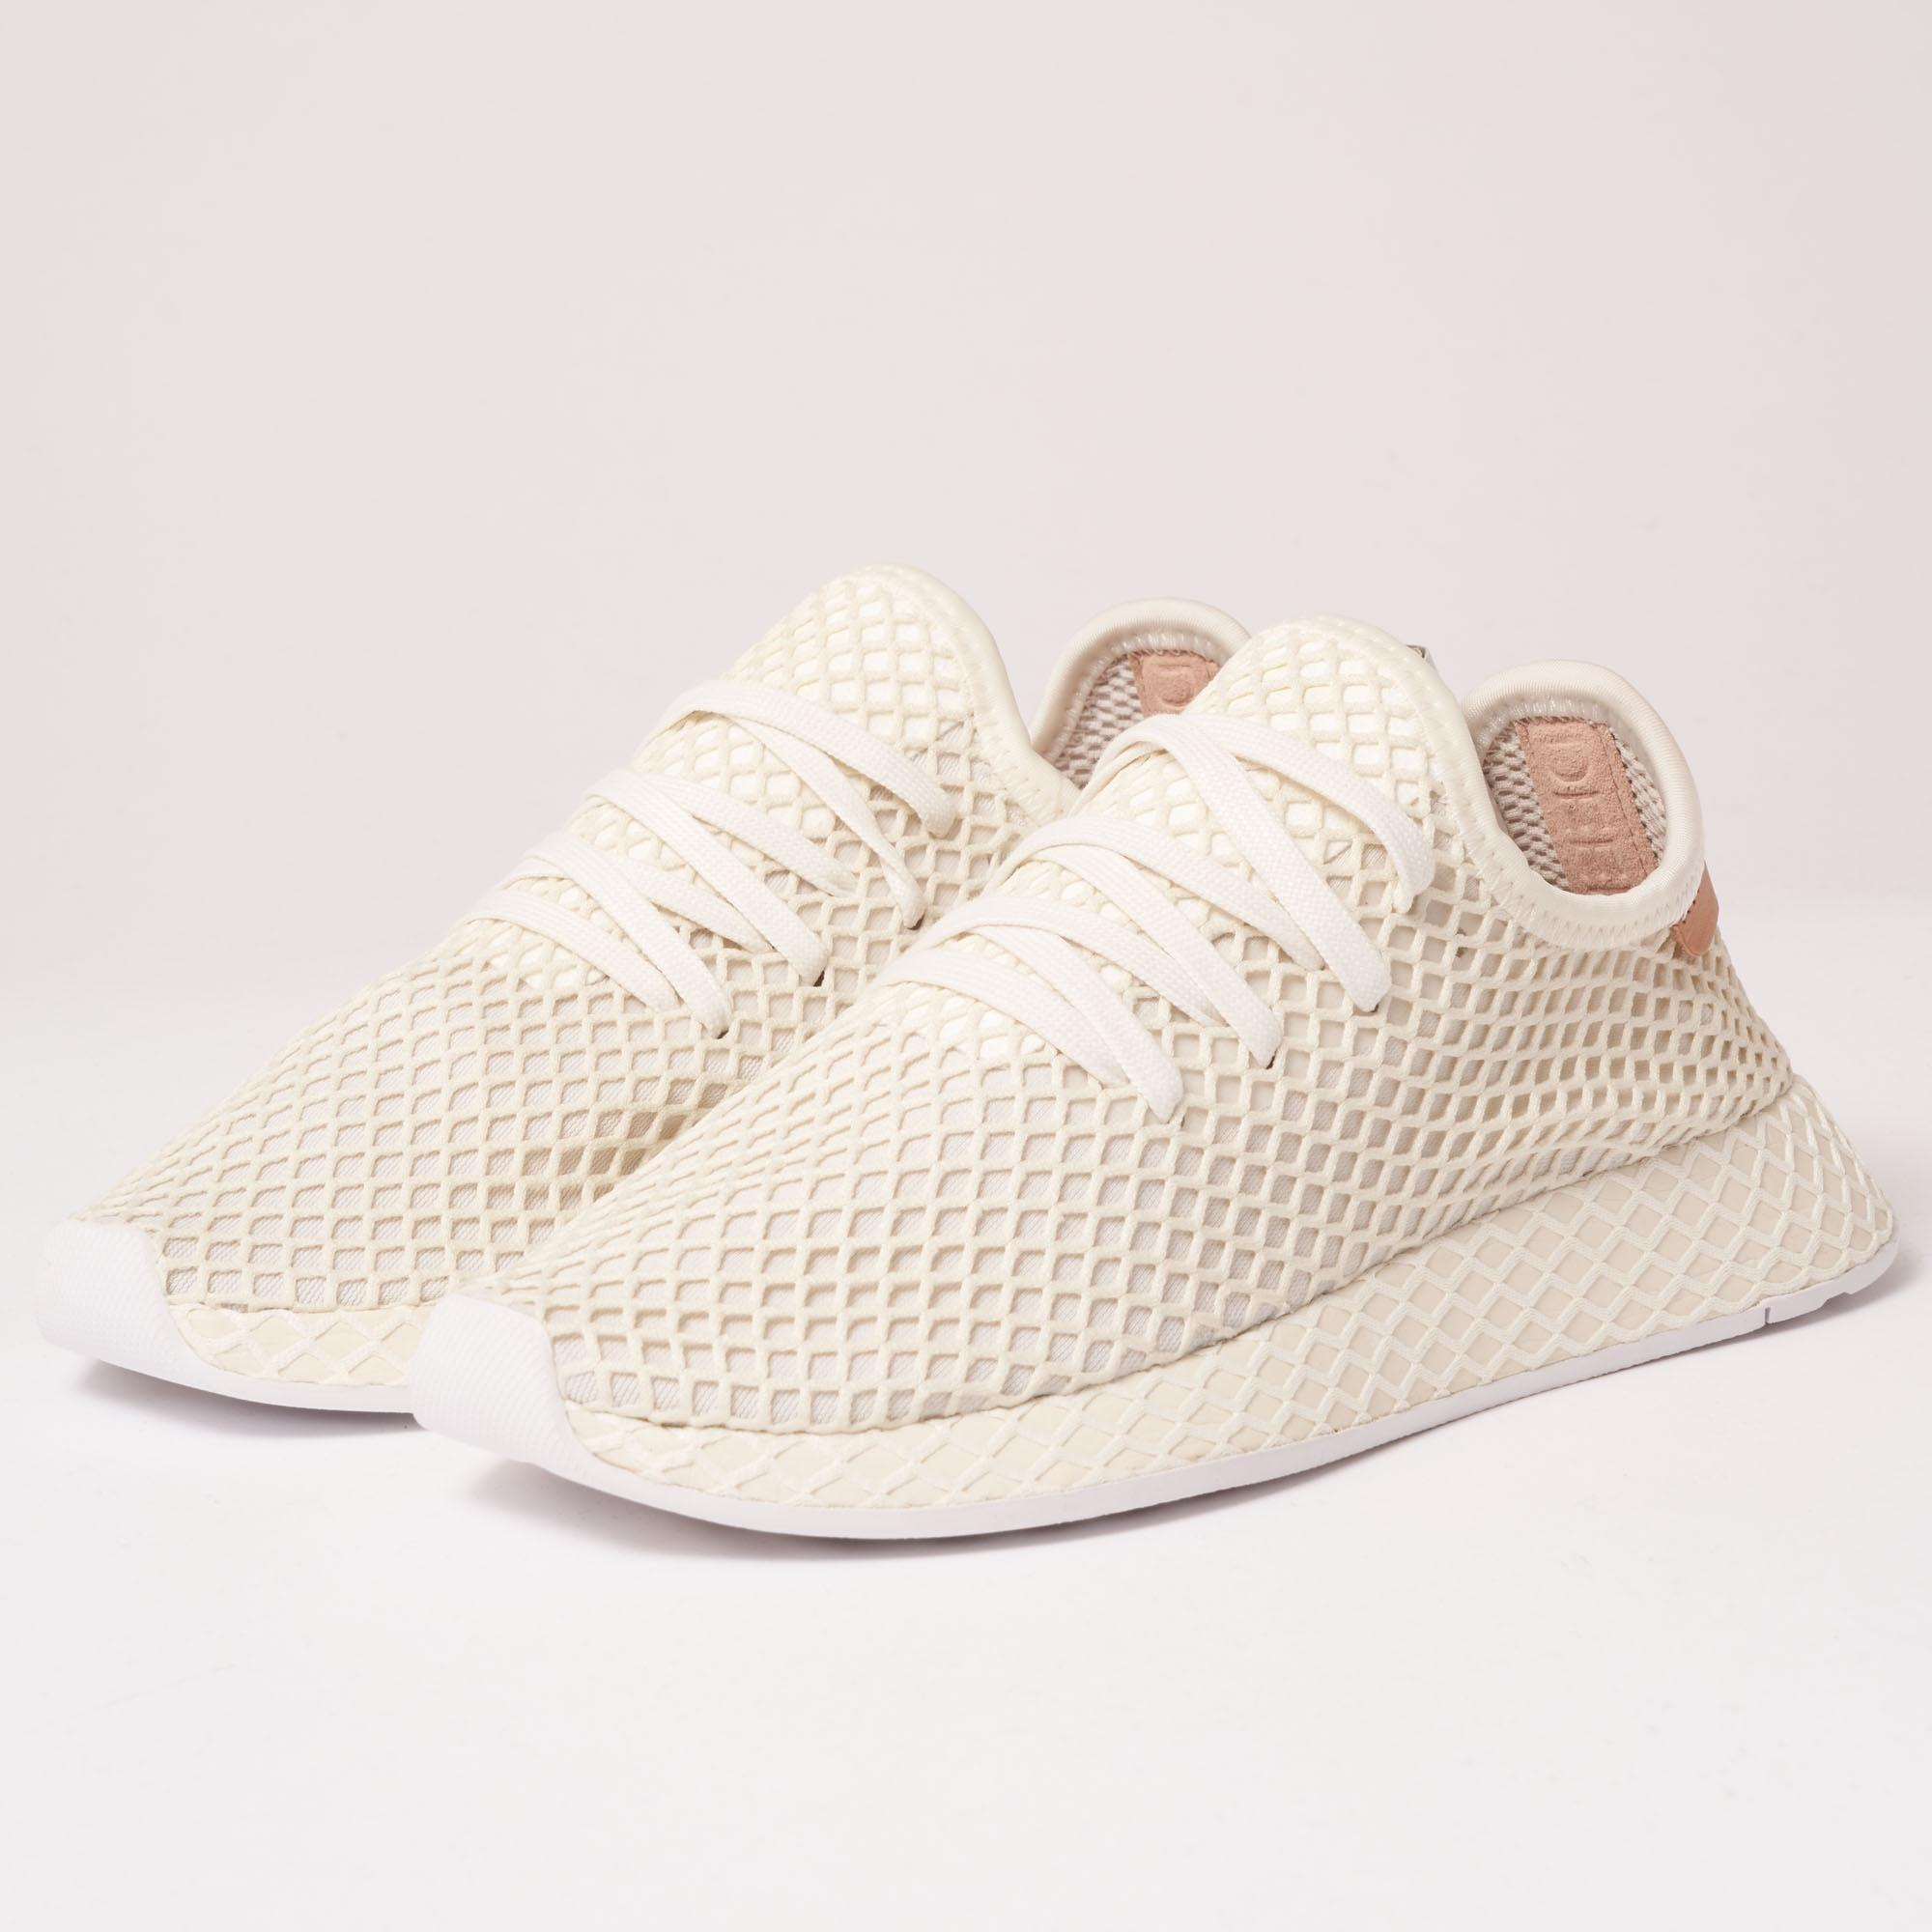 566745b09 Lyst - adidas Originals Deerupt Runner - Cloud White